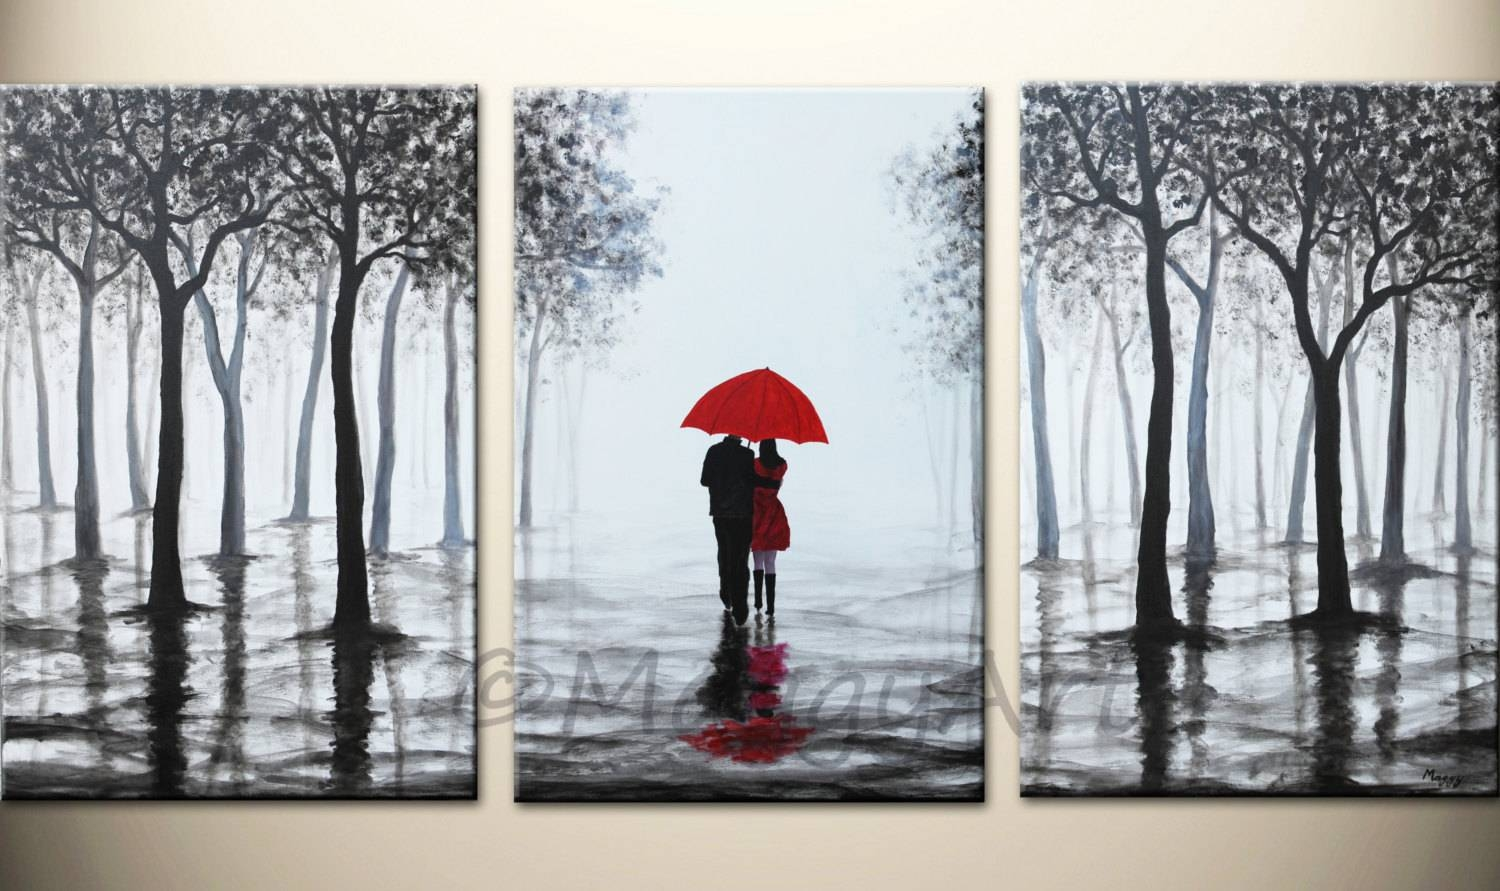 Original Acrylic Painting72x36 Inch Walking In Rain Black Within Recent Black White And Red Wall Art (View 10 of 20)